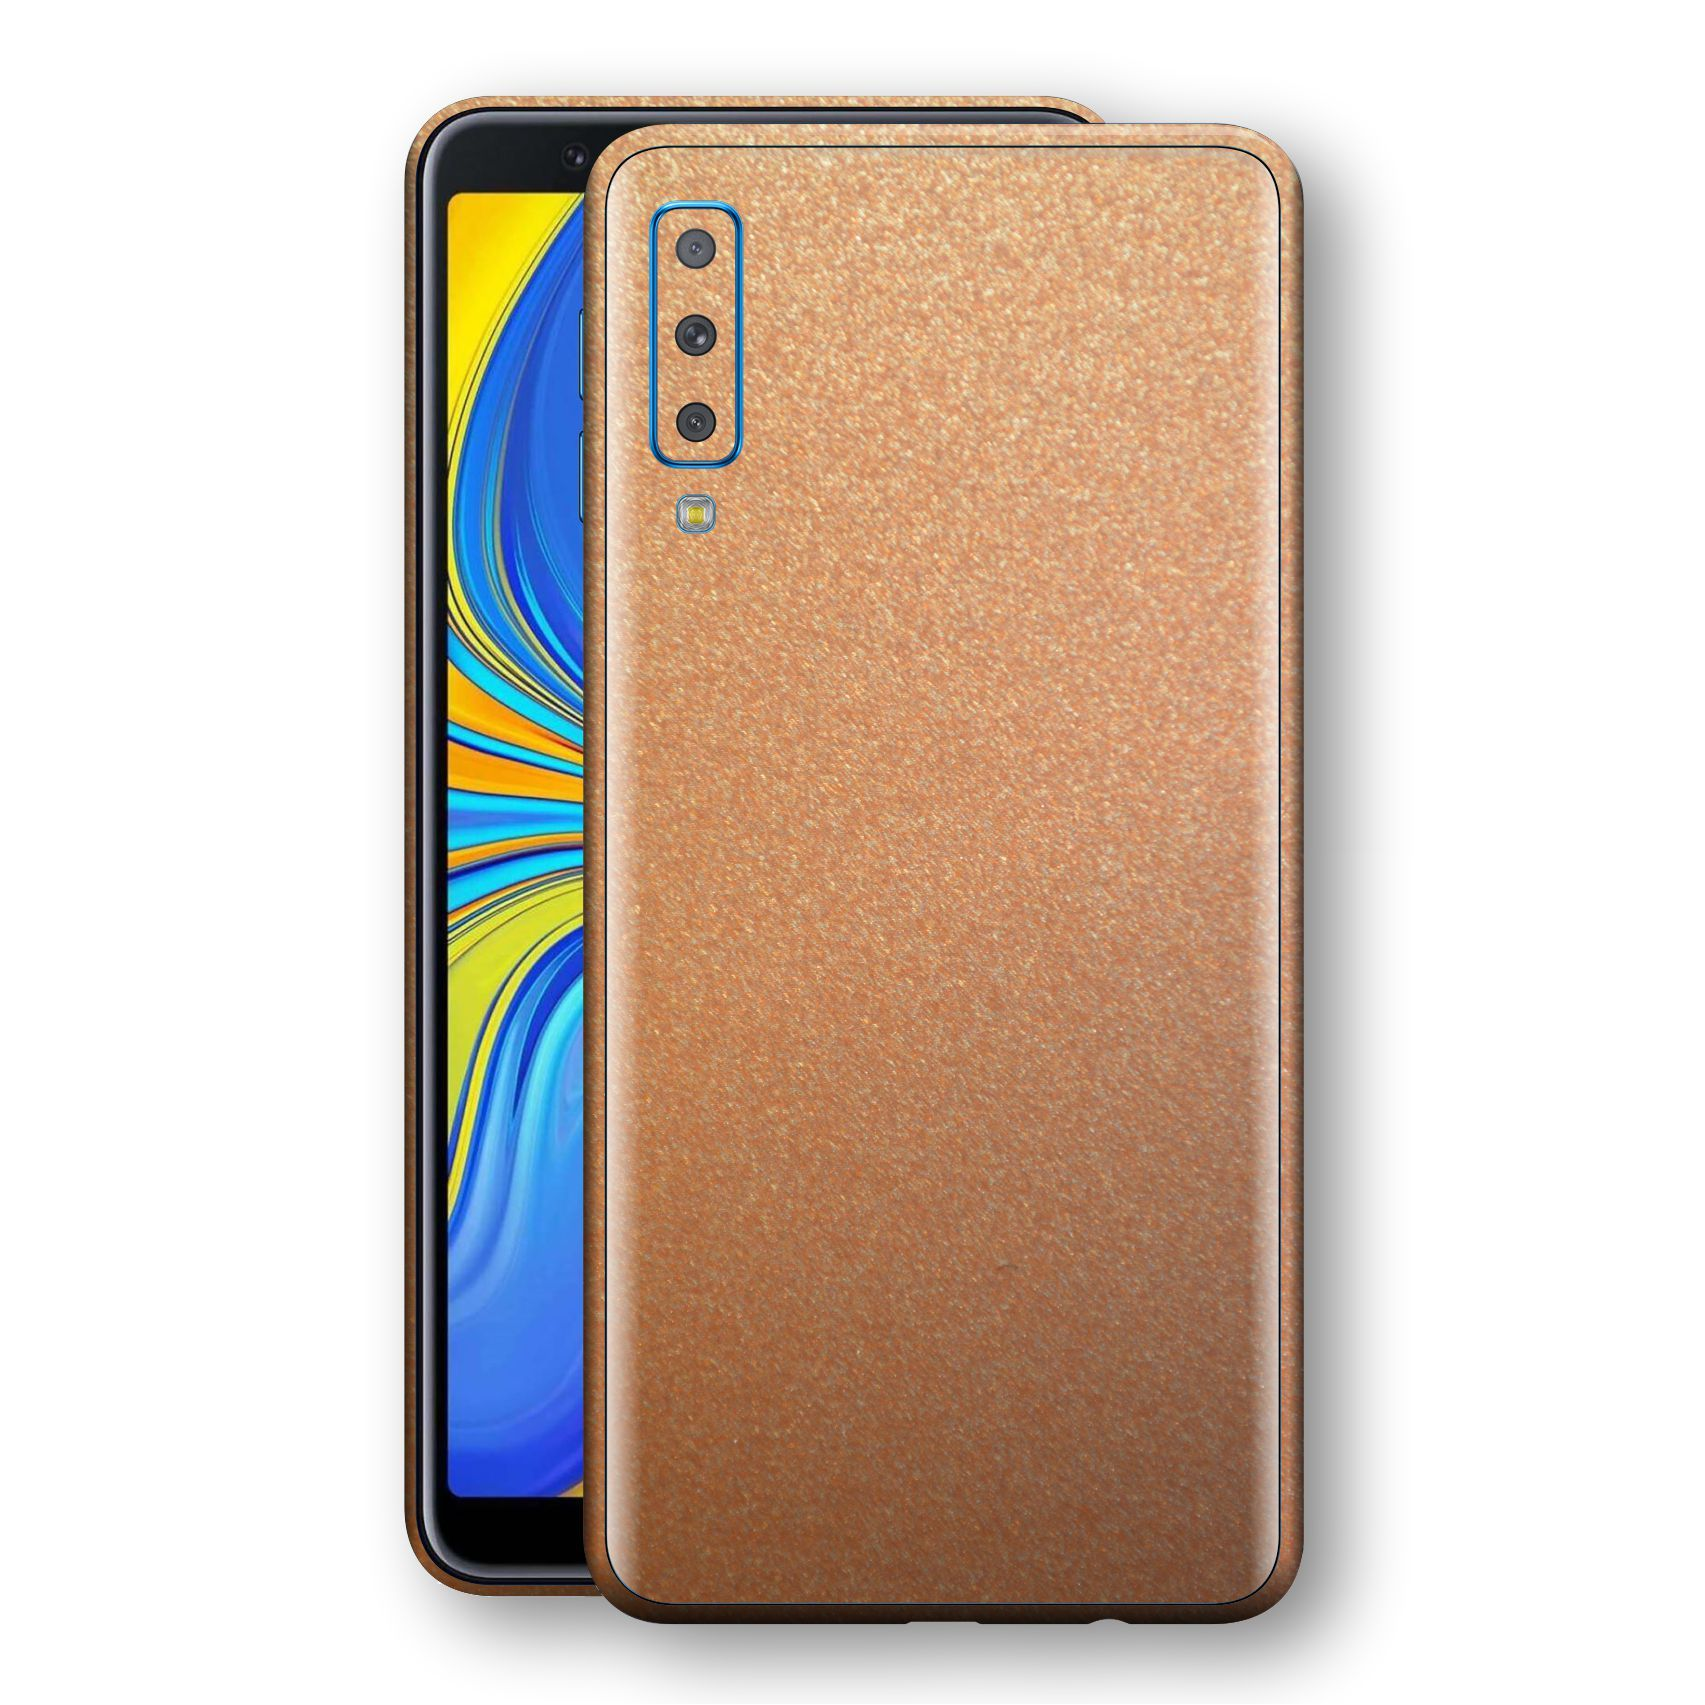 Samsung Galaxy A7 (2018) Copper Matt Metallic Skin, Decal, Wrap, Protector, Cover by EasySkinz | EasySkinz.com